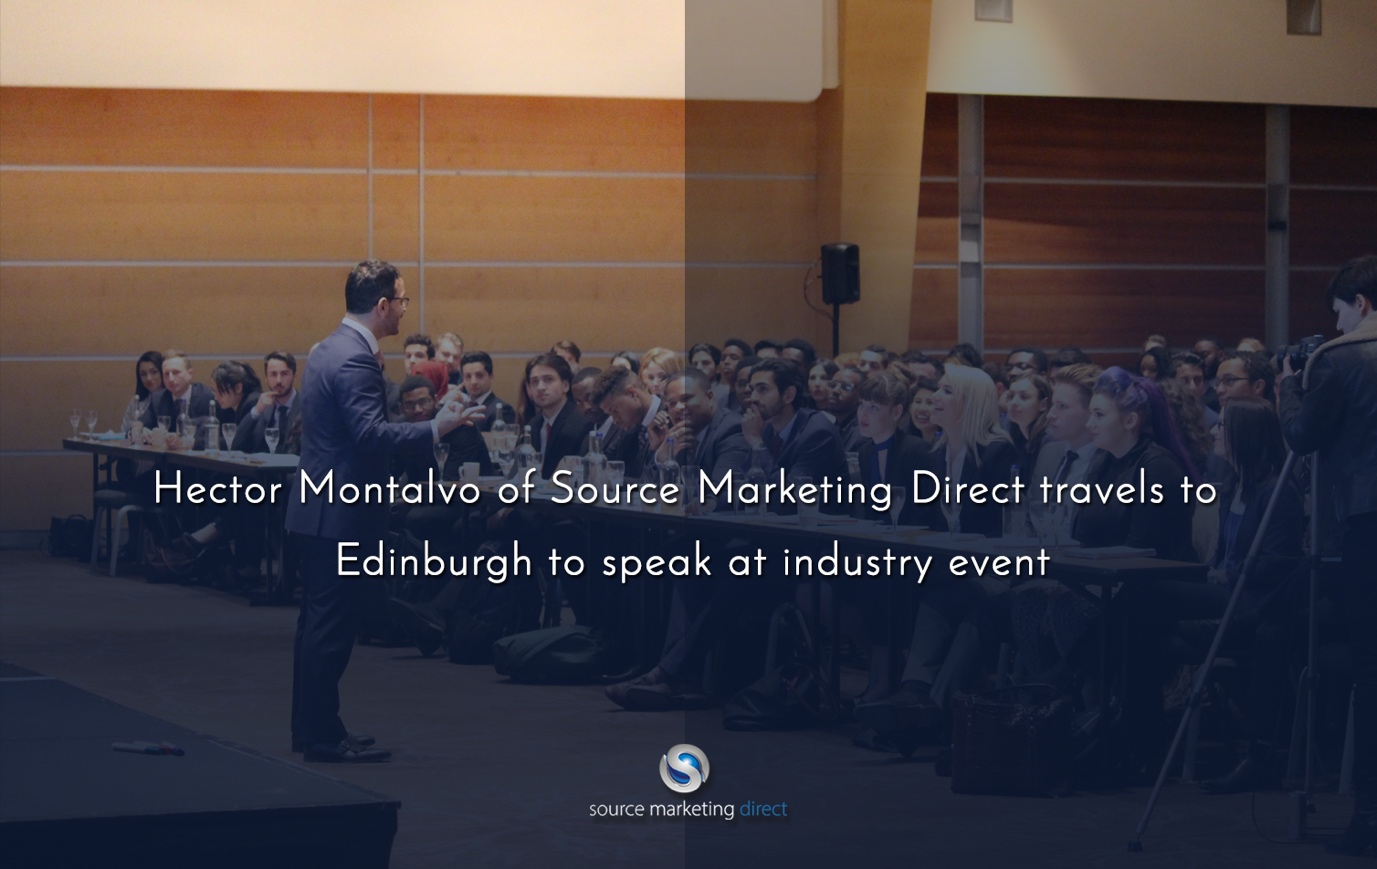 Hector Montalvo of Source Marketing Direct travels to Edinburgh to speak at industry event